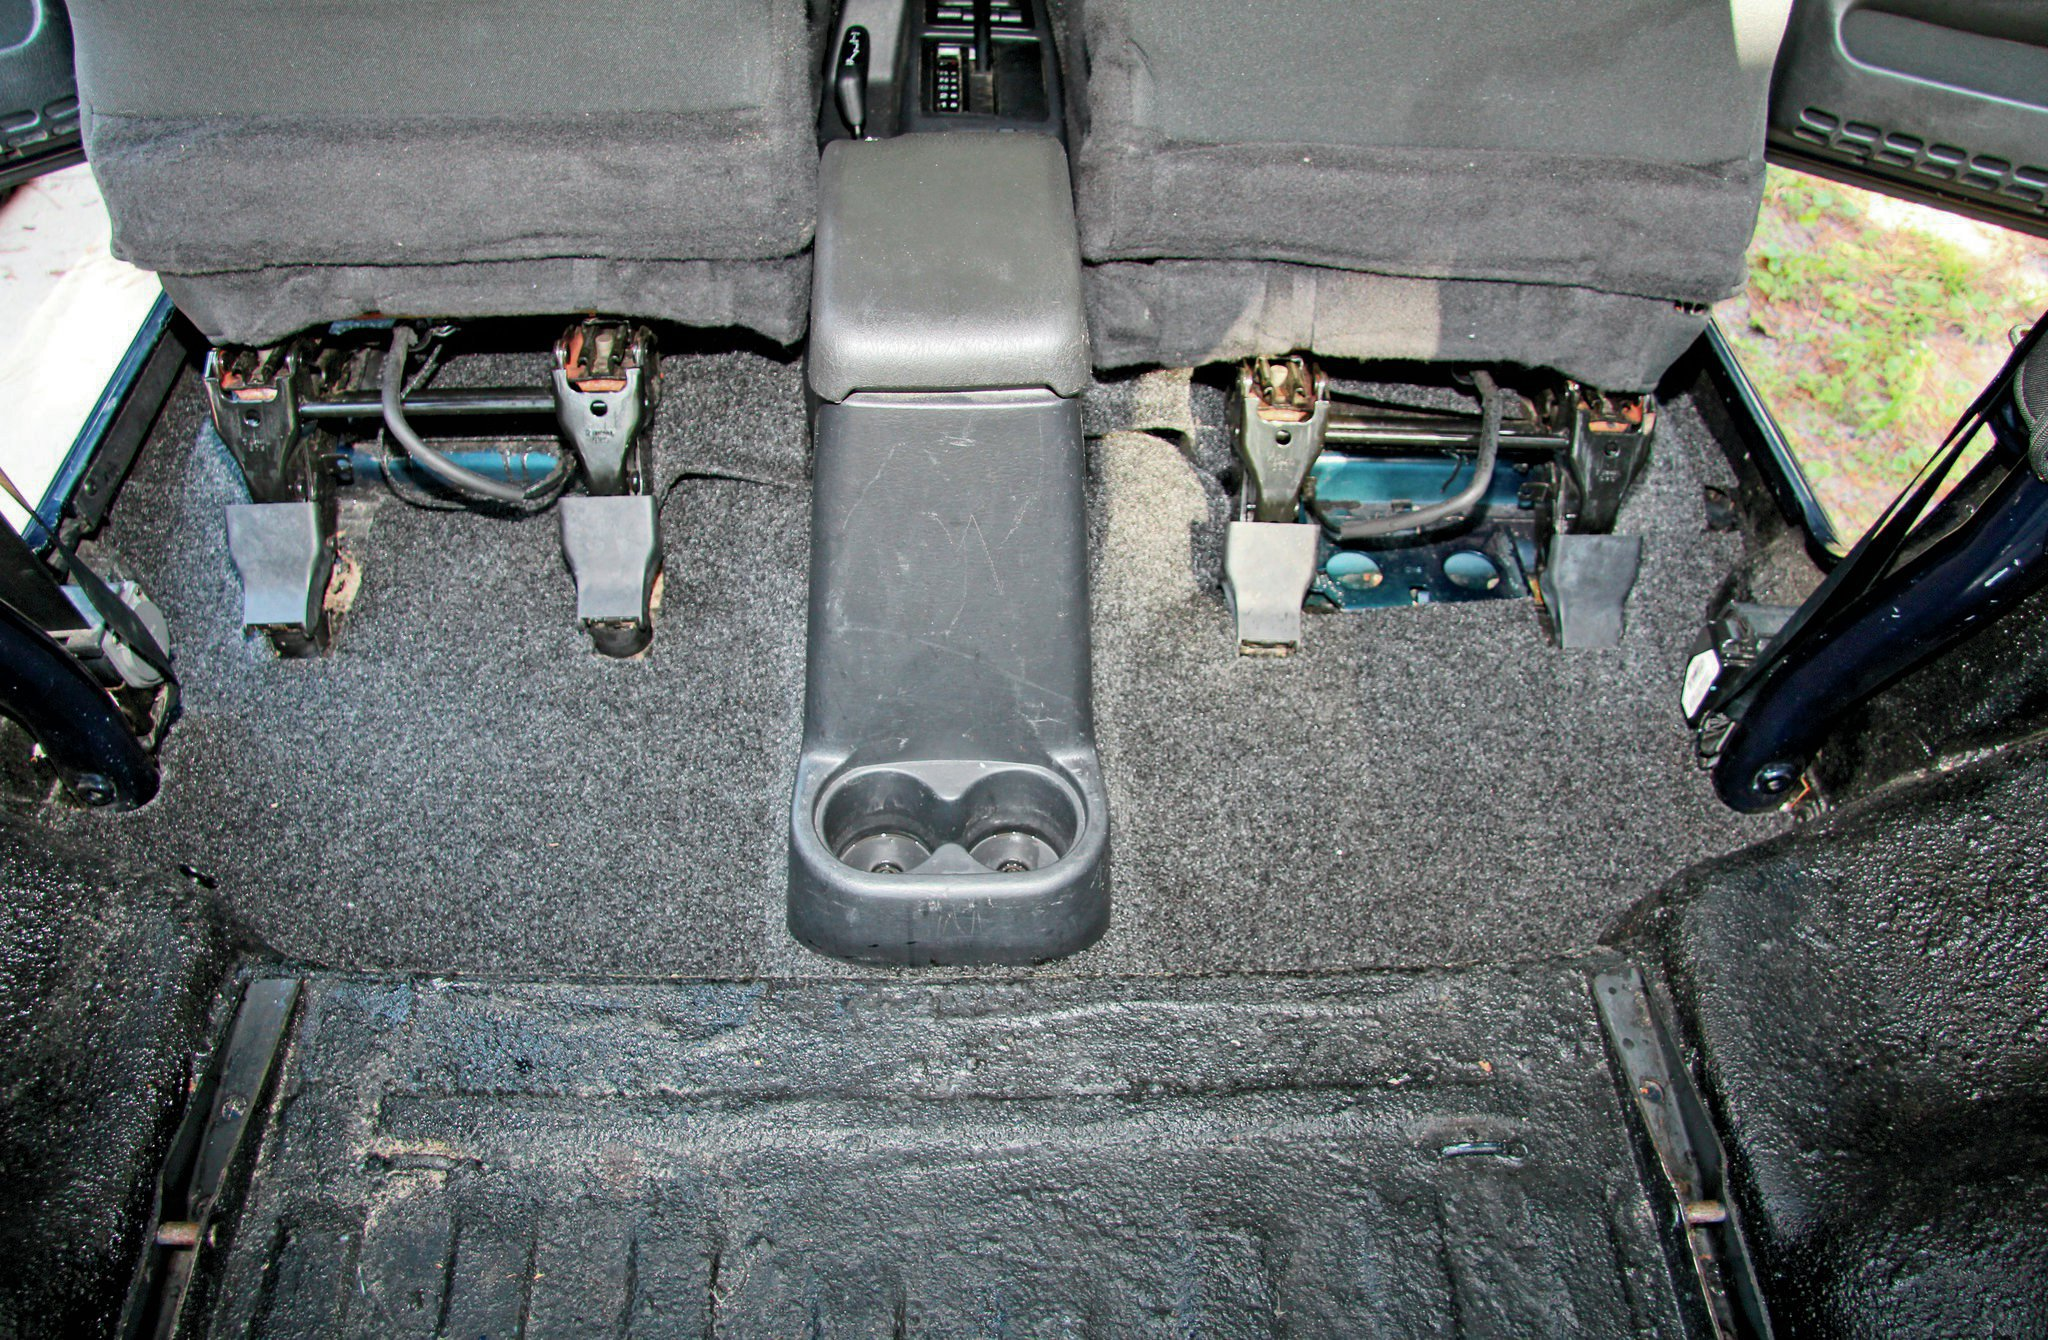 To secure the rear portion of the BedRug behind the front seats, you will need to remove the two bolts that attach the rear portion of the center console. Doing so will allow you to more easily fit the BedRug in place.